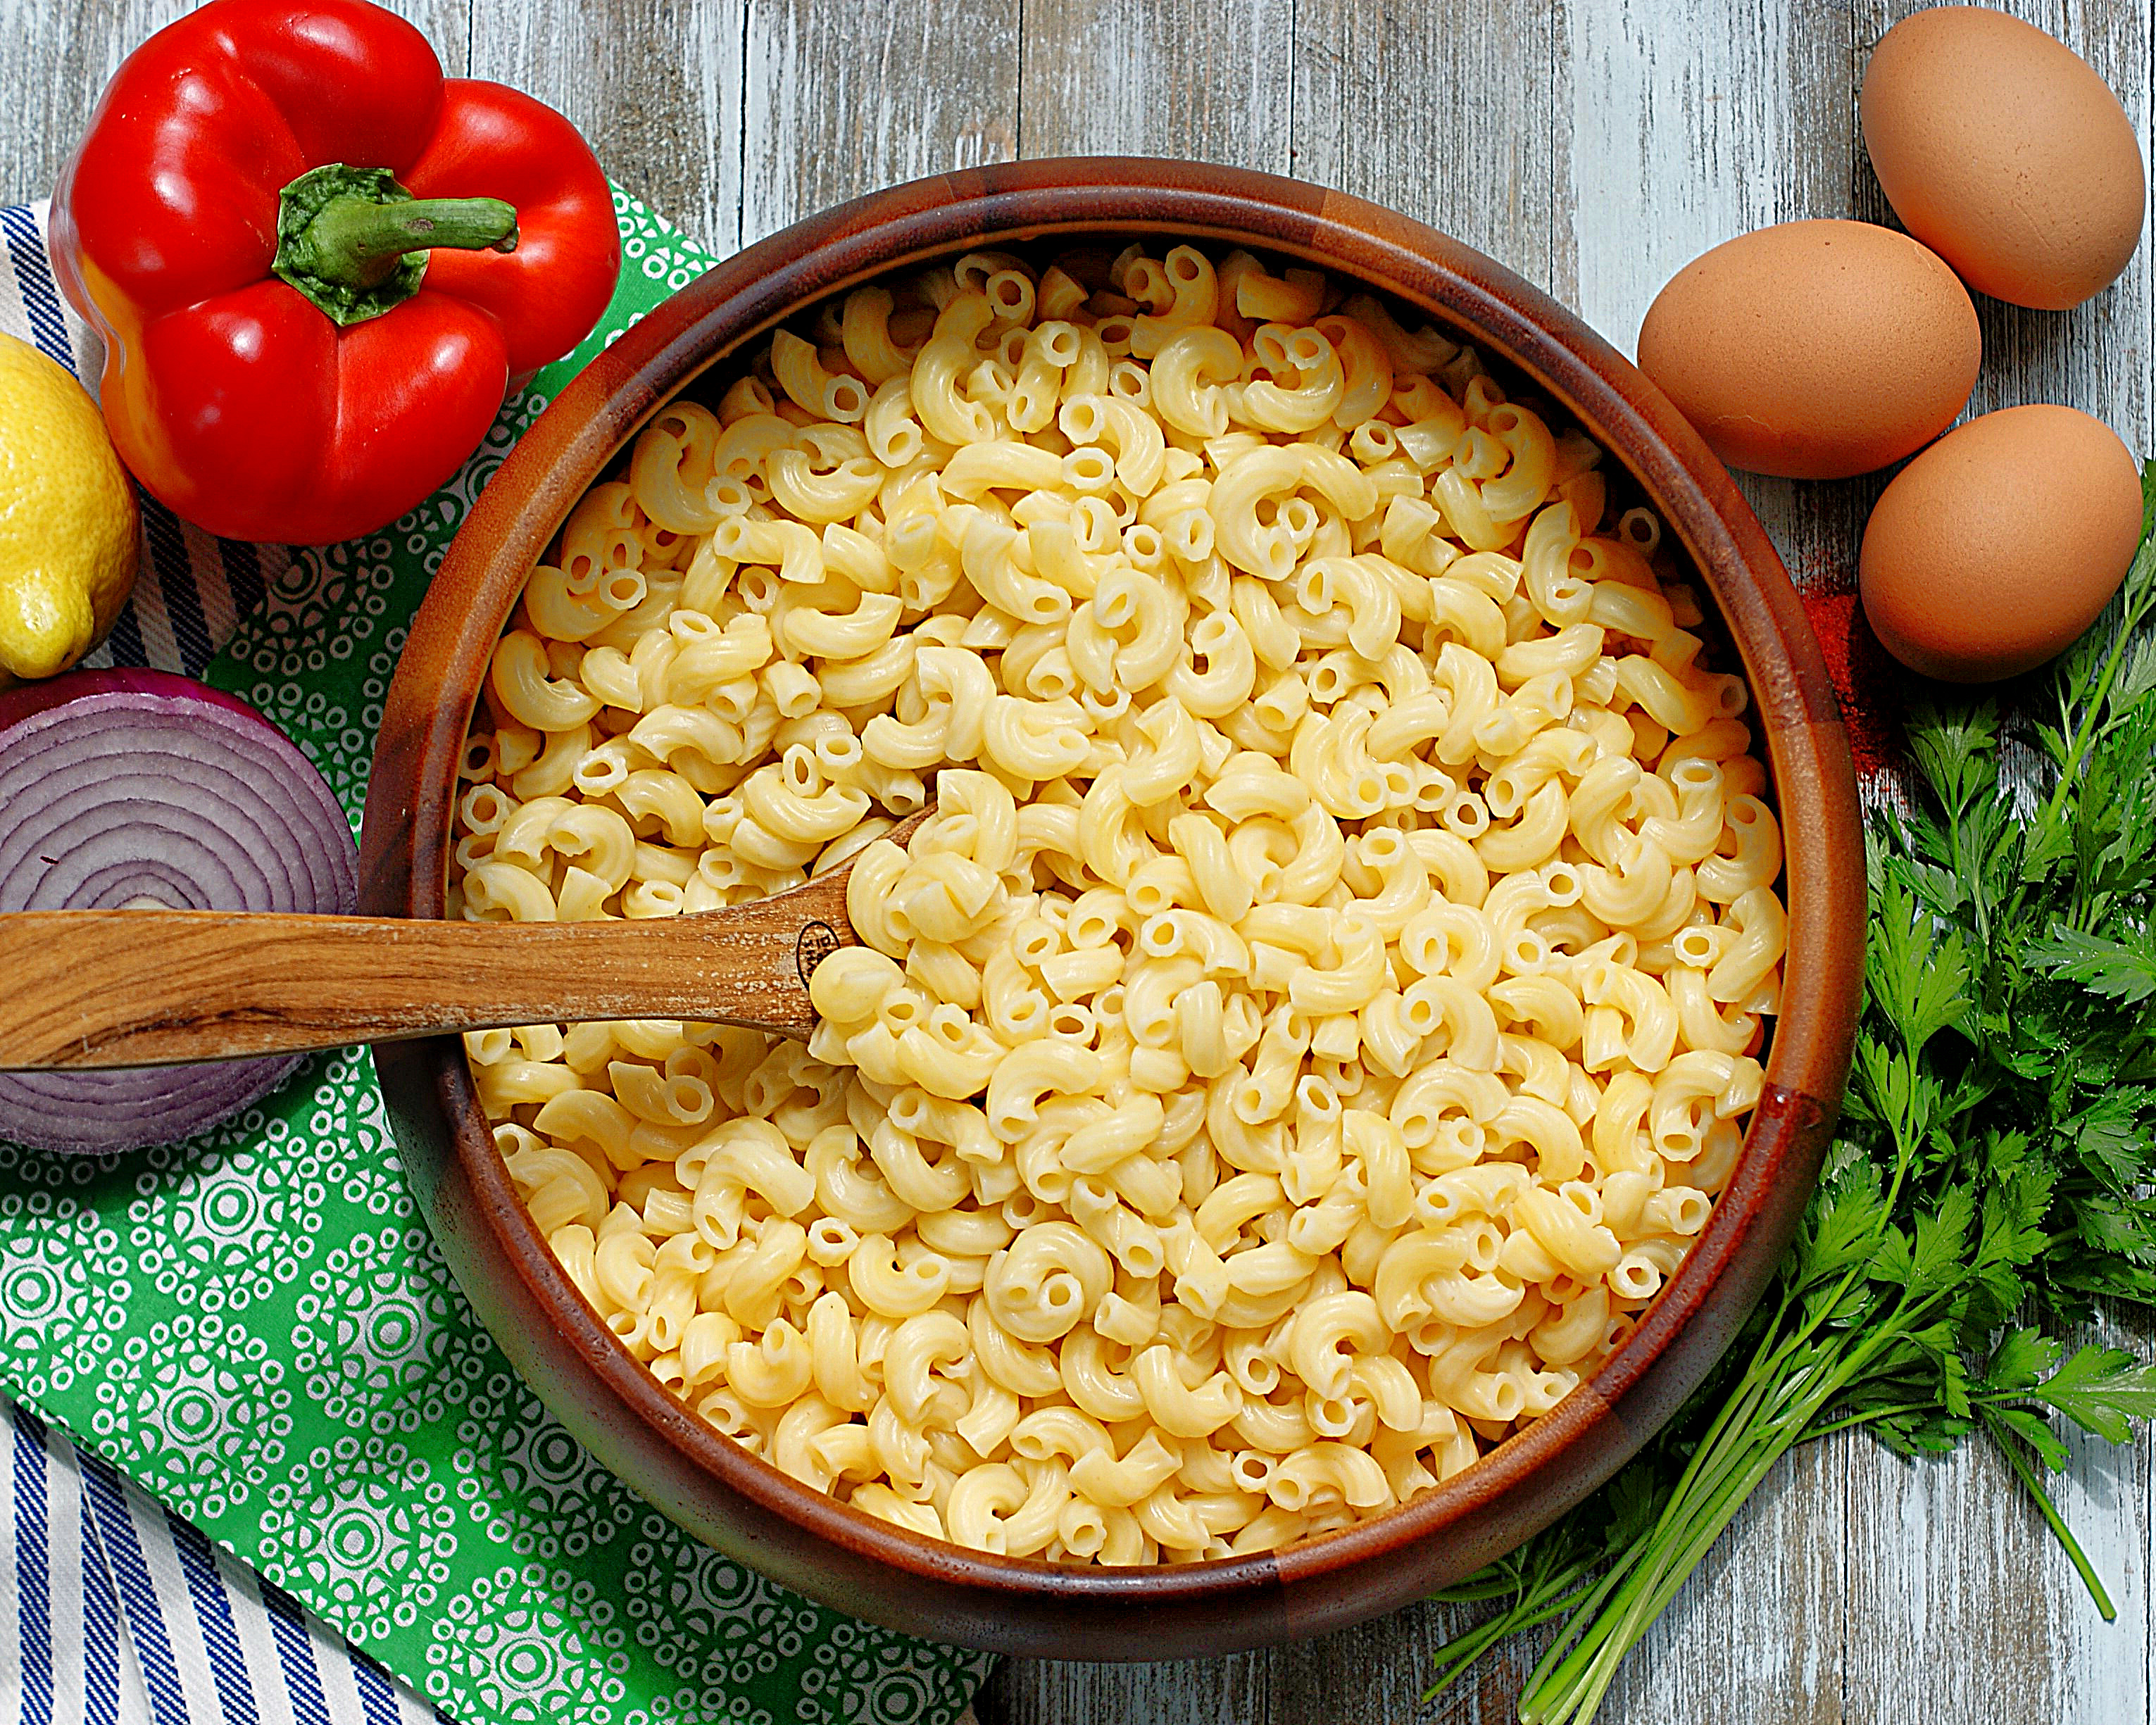 A bowl of cooked elbow macaroni and ingredients for macaroni salad